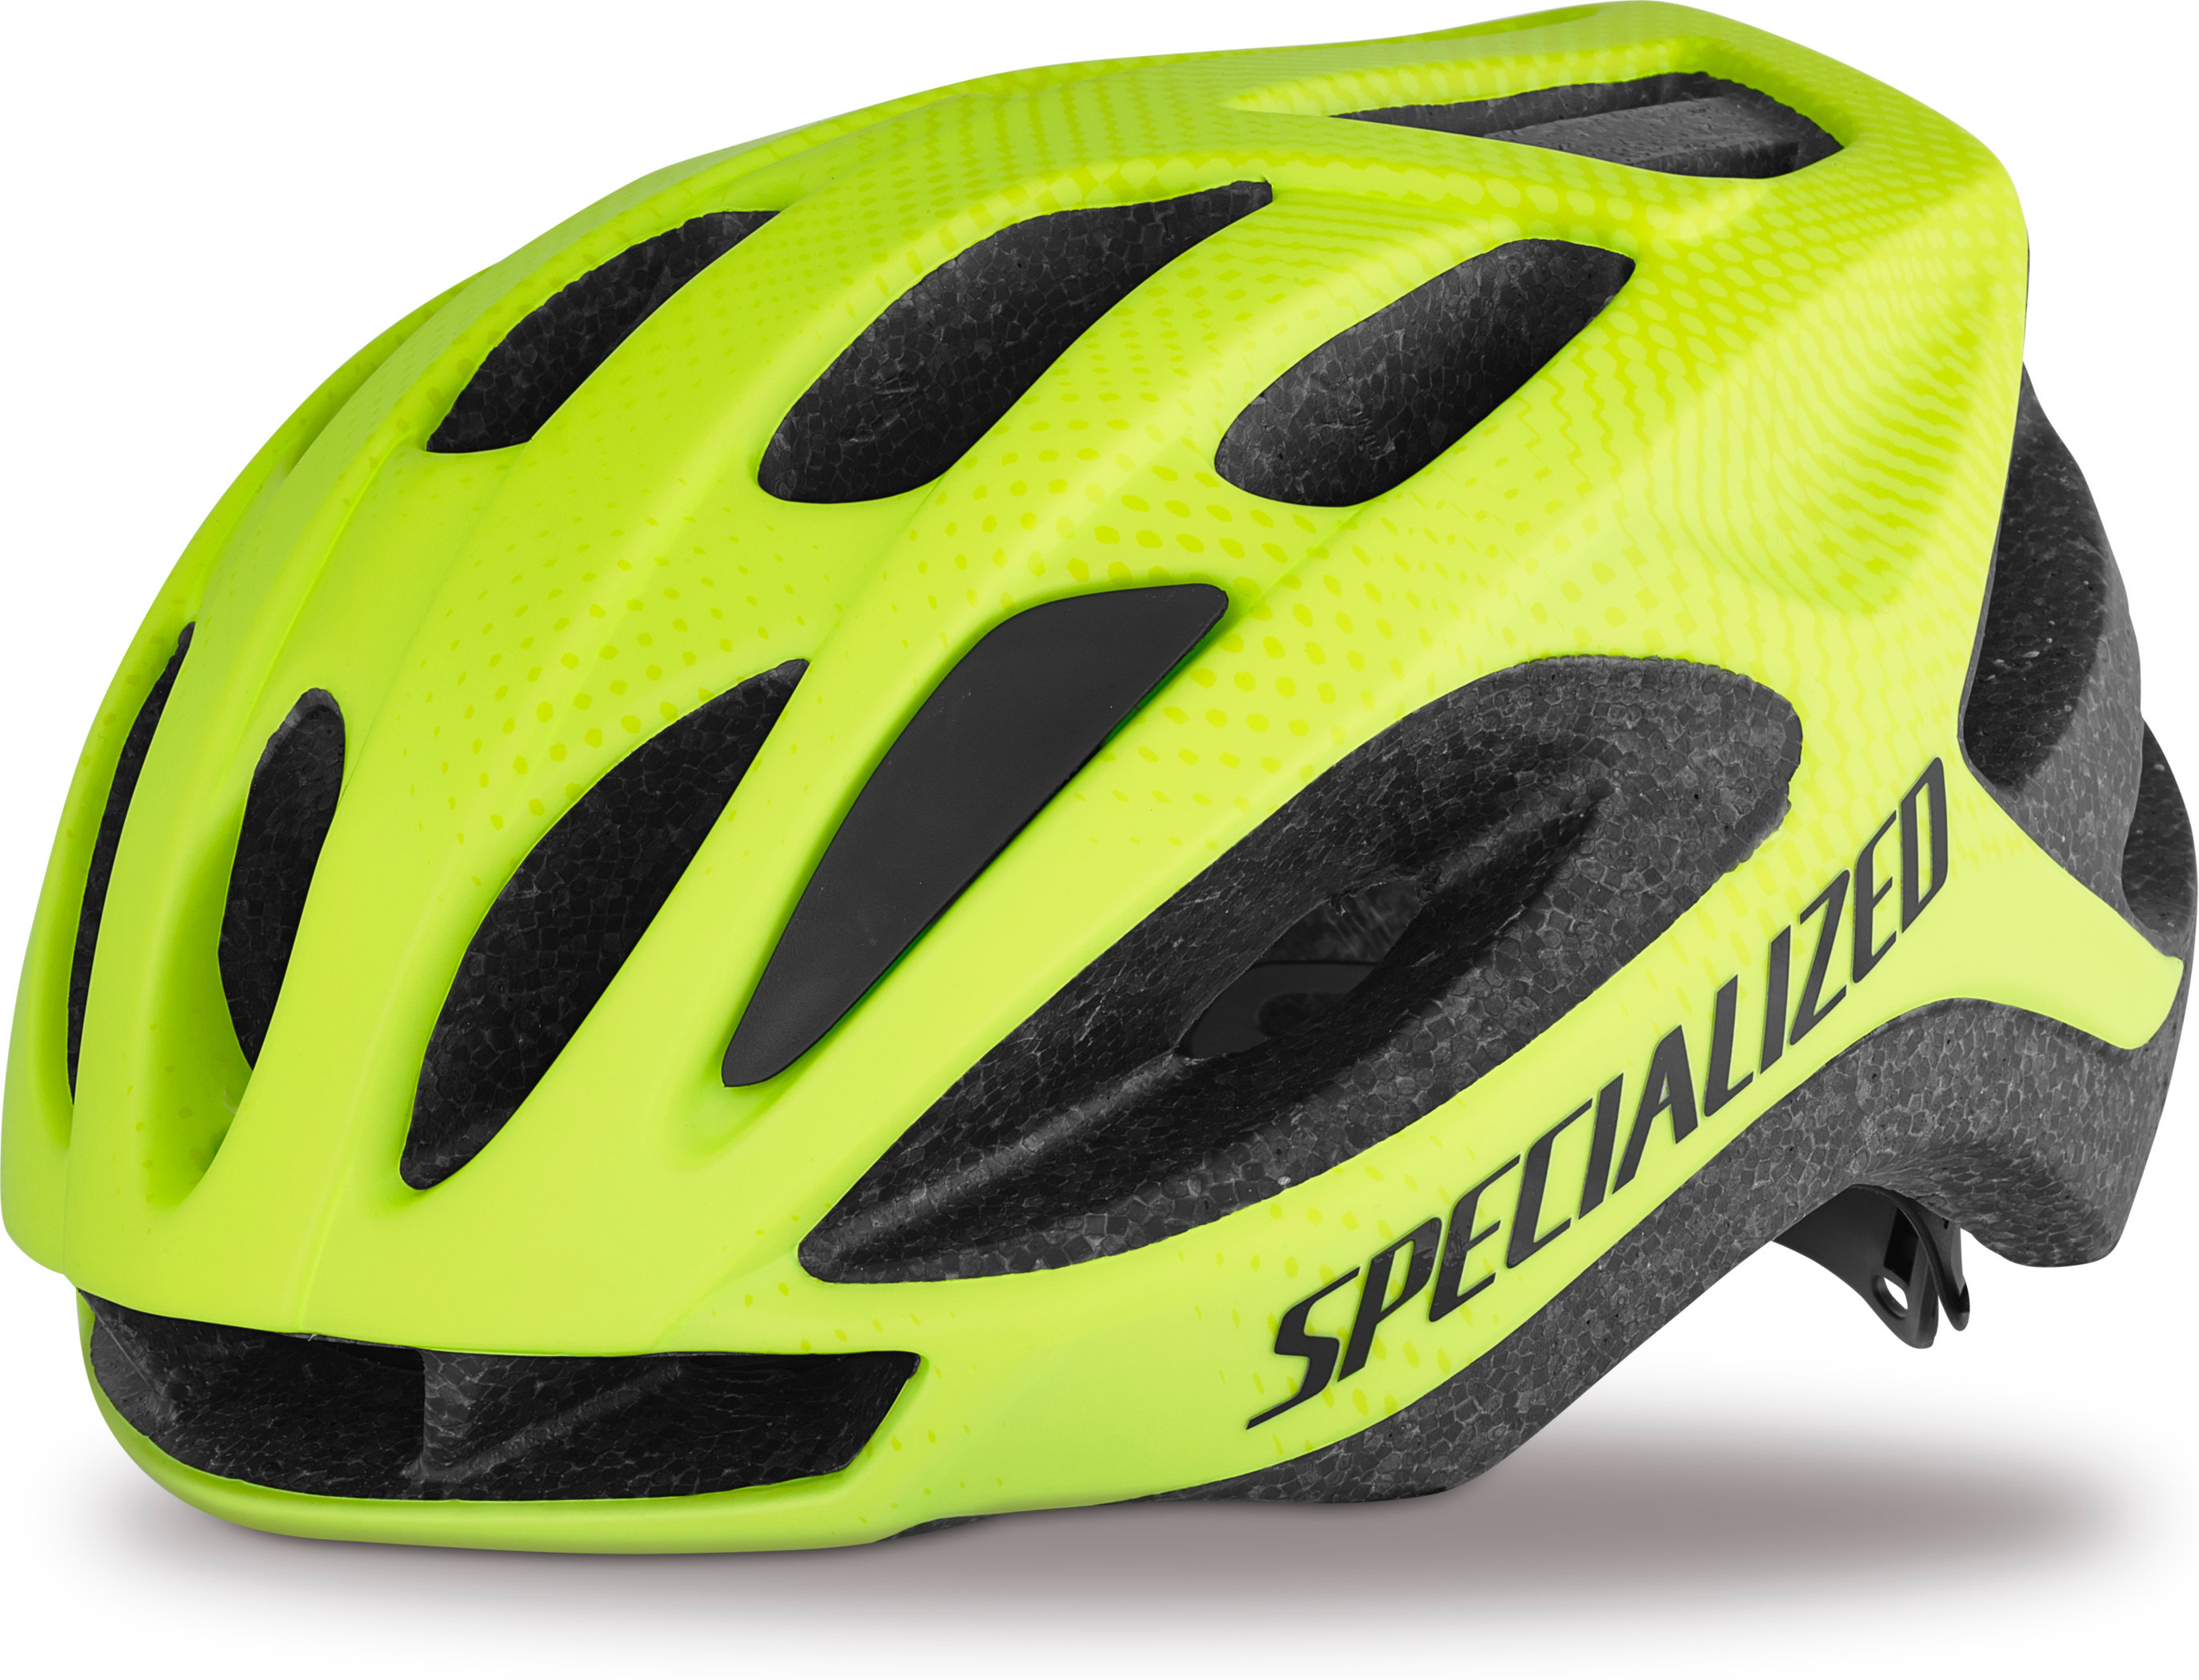 SPECIALIZED ALIGN HLMT CE SAFETY ION ADLT - Alpha Bikes